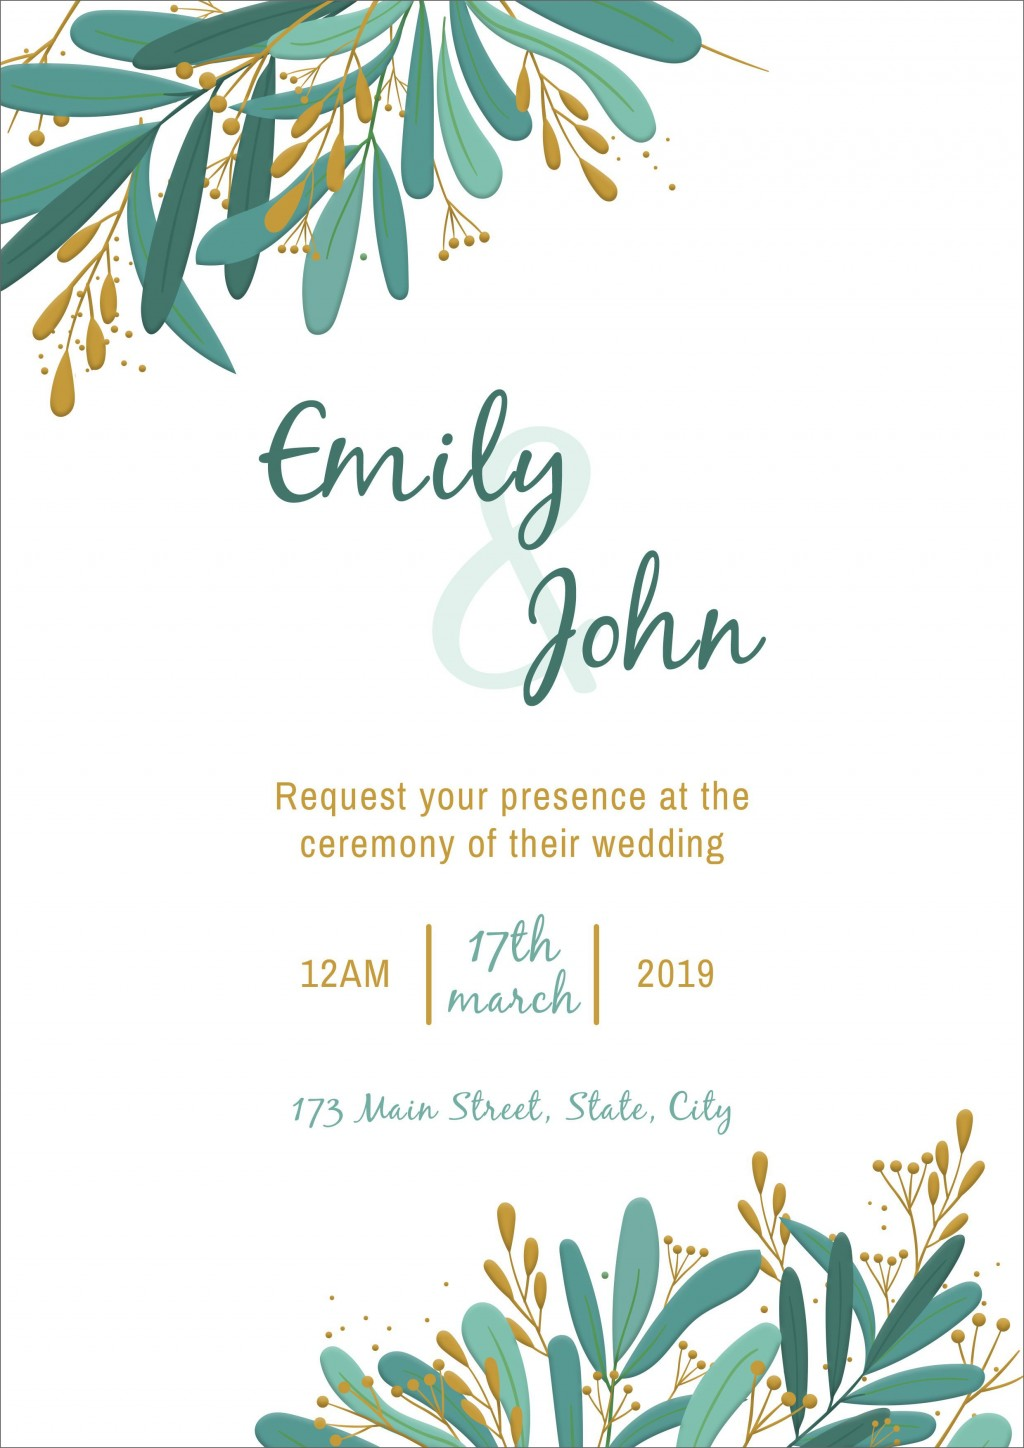 008 Phenomenal Blank Wedding Invitation Template Picture  Templates Free Download Printable Royal BlueLarge